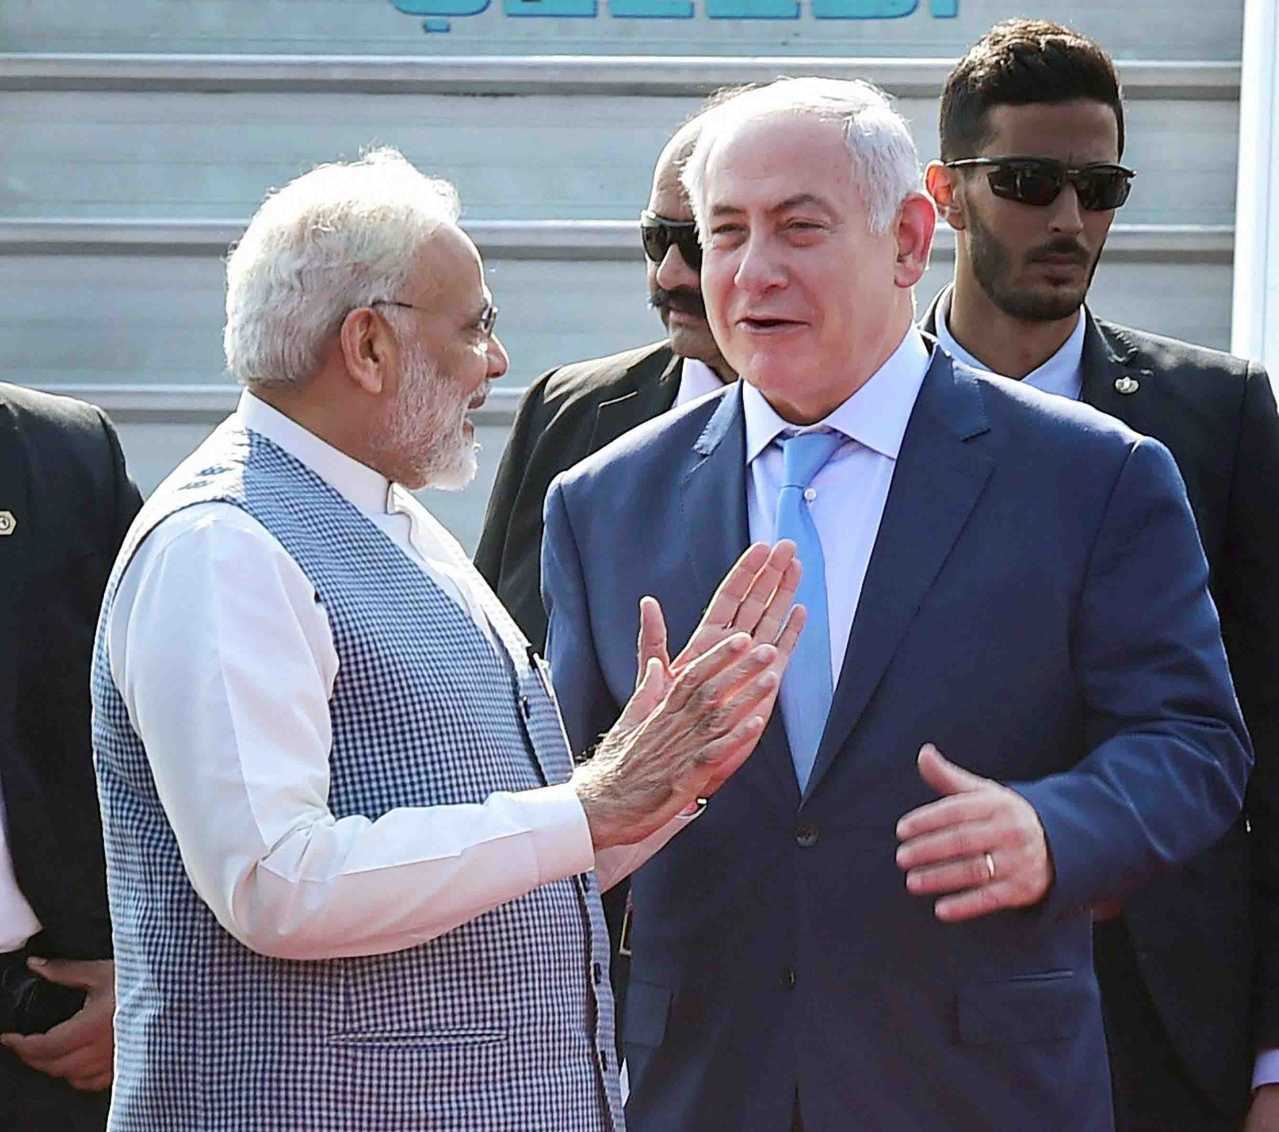 Prime Minister receiving his Israeli counterpart at the Indira Gandhi International Airport.